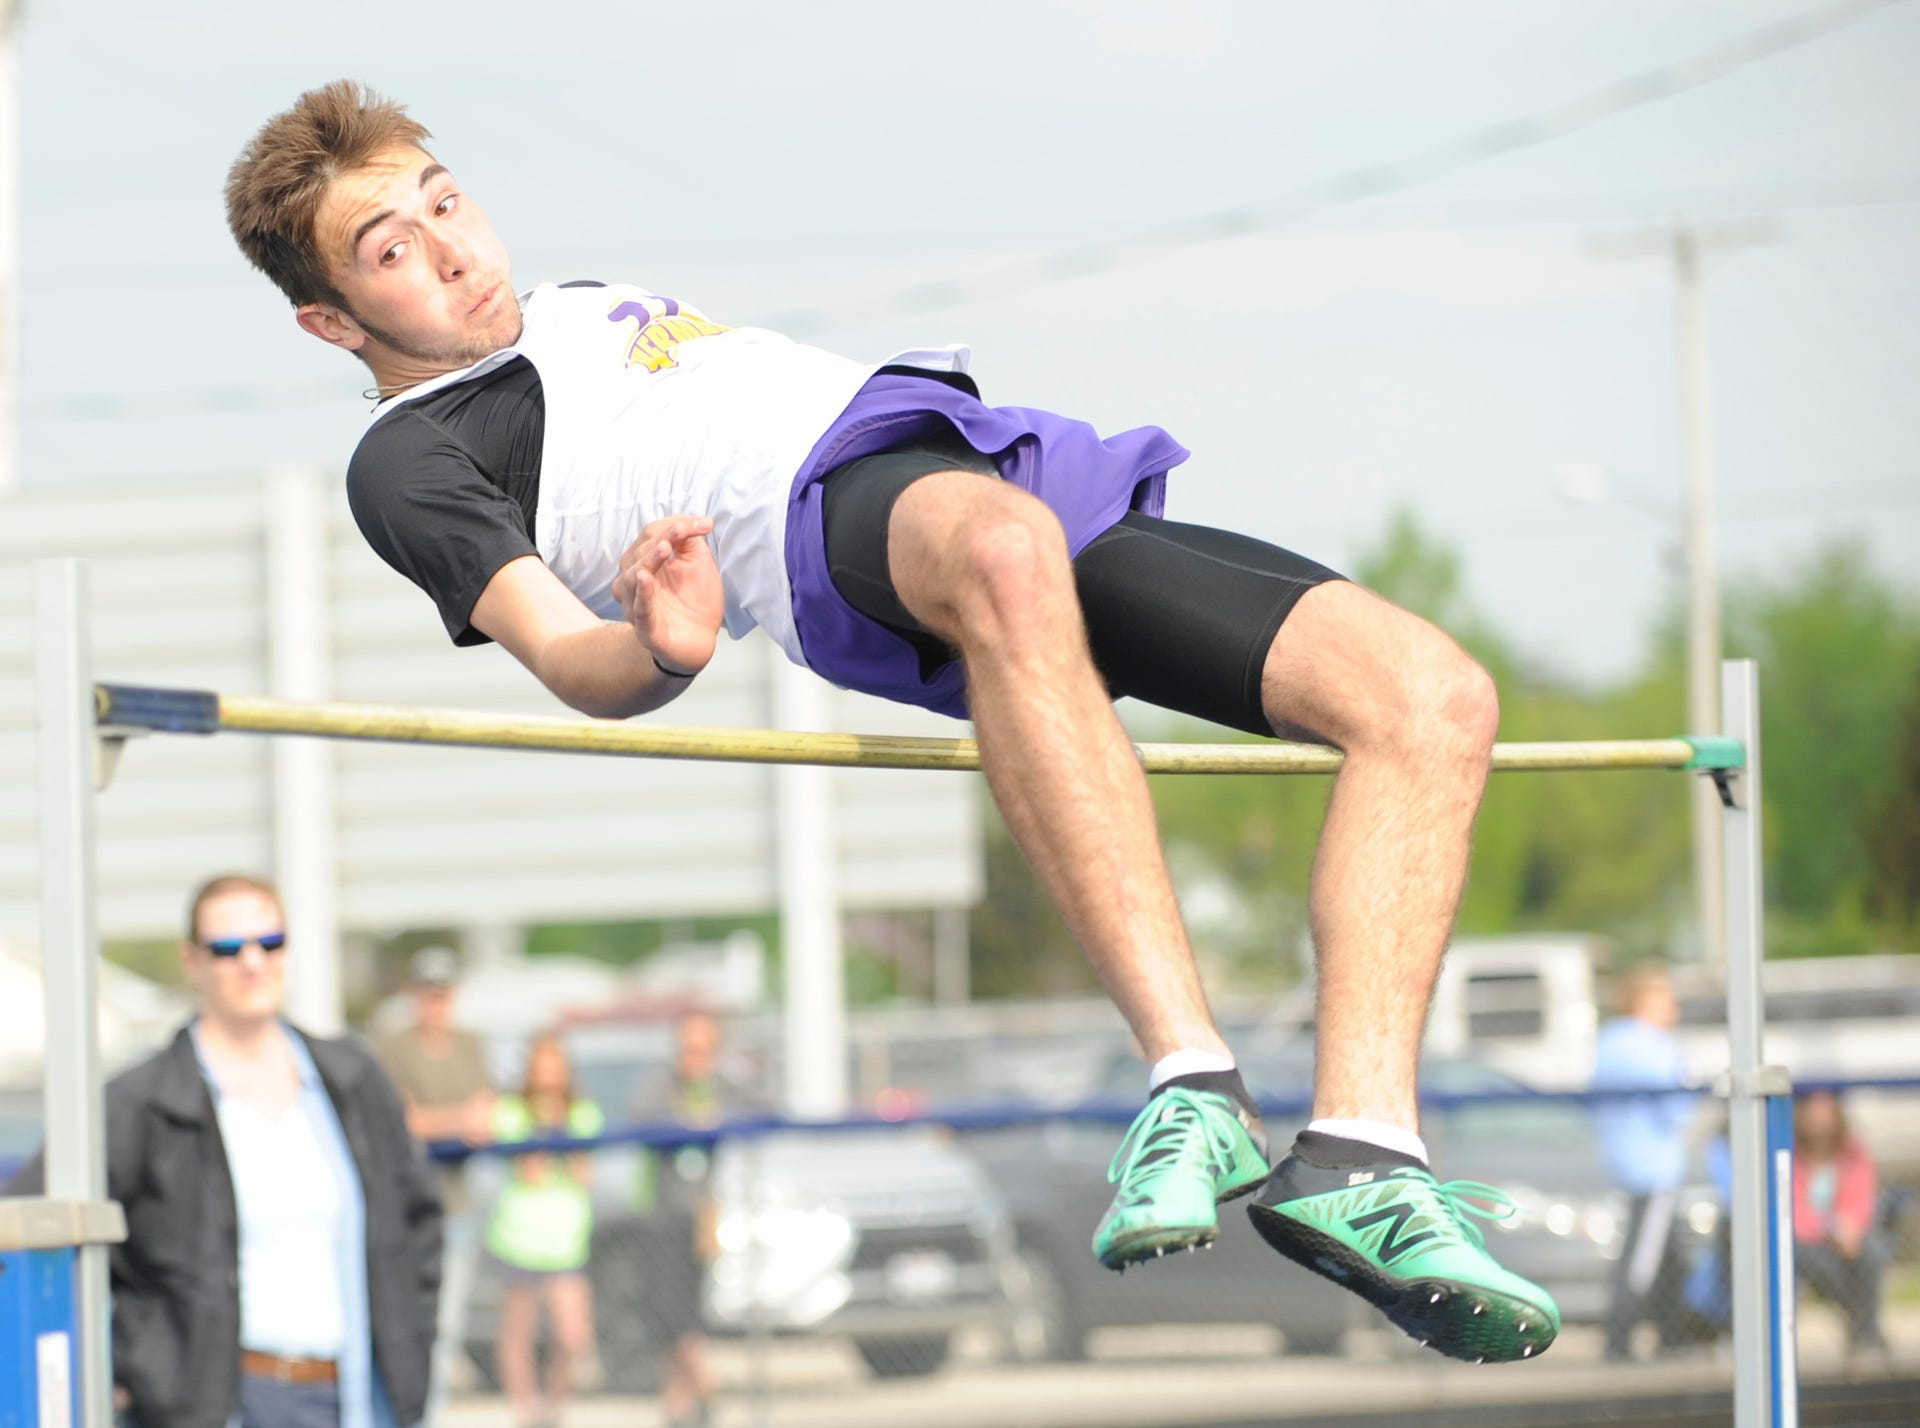 """Unioto junior Cade McKee dominated the high jump with a PR of 6'00"""" Tuesday afternoon at the 95th annual Ross County Meet in Frankfort, Ohio, on April 30, 2019."""